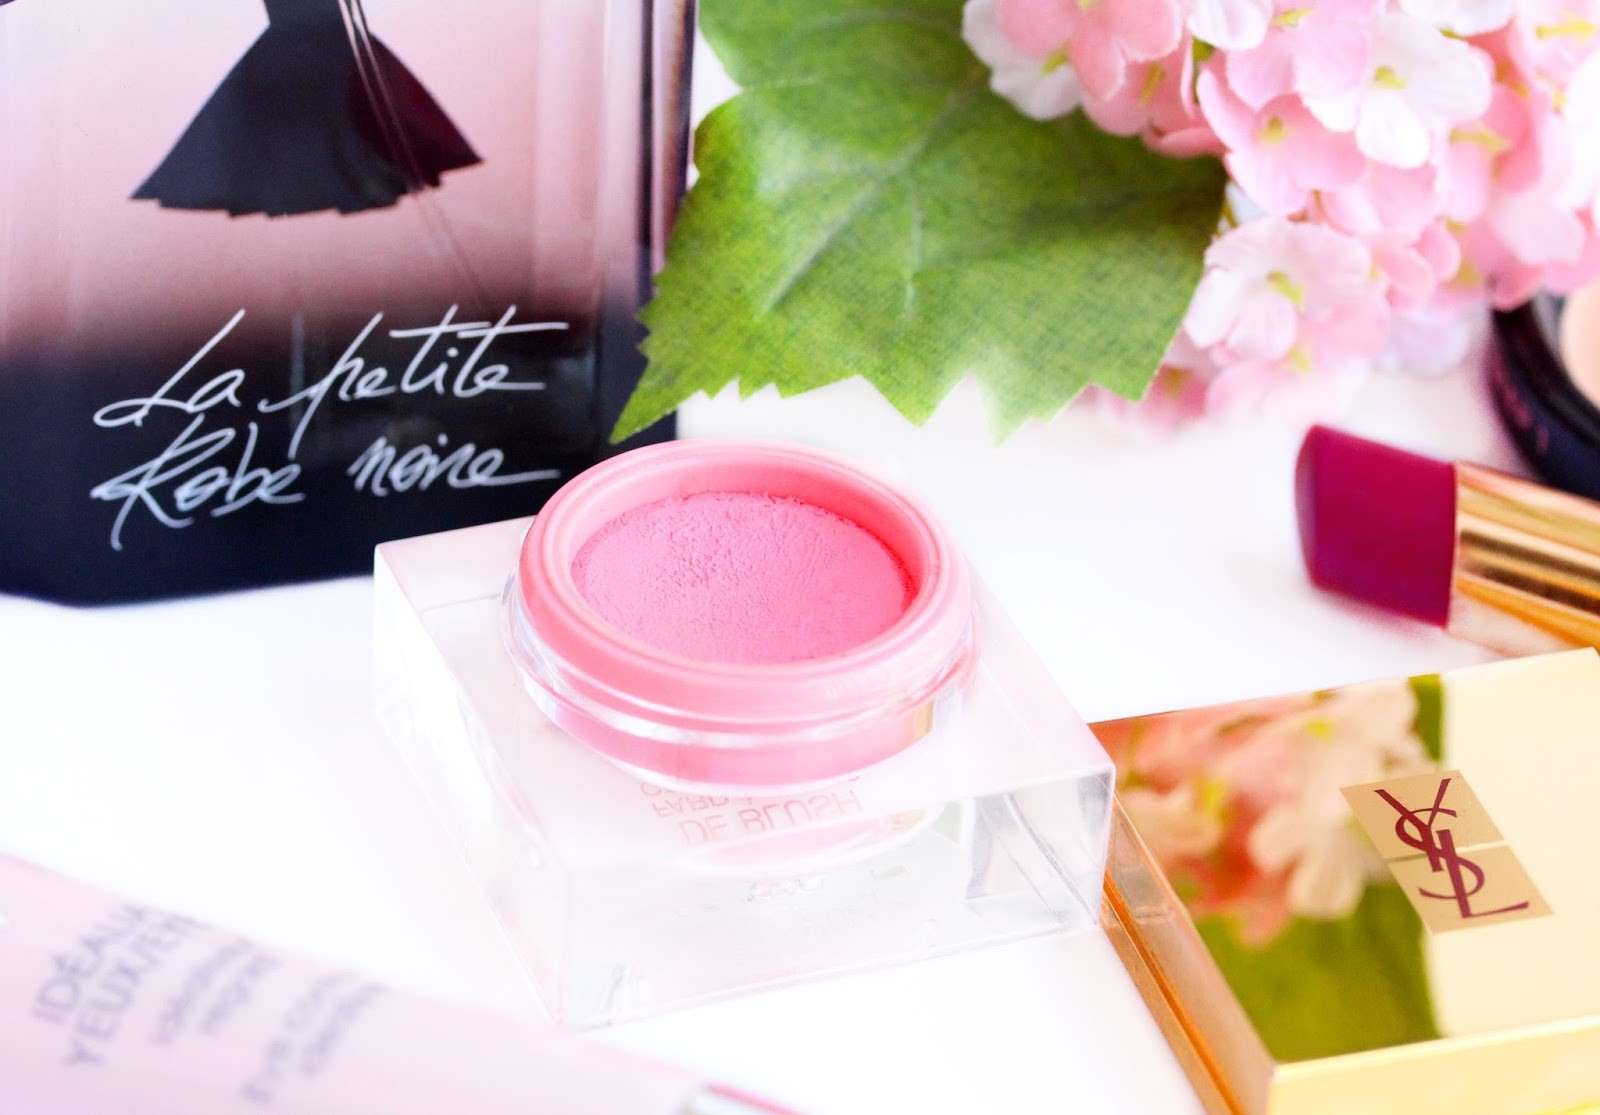 YSL Cream Blush in Baby Doll